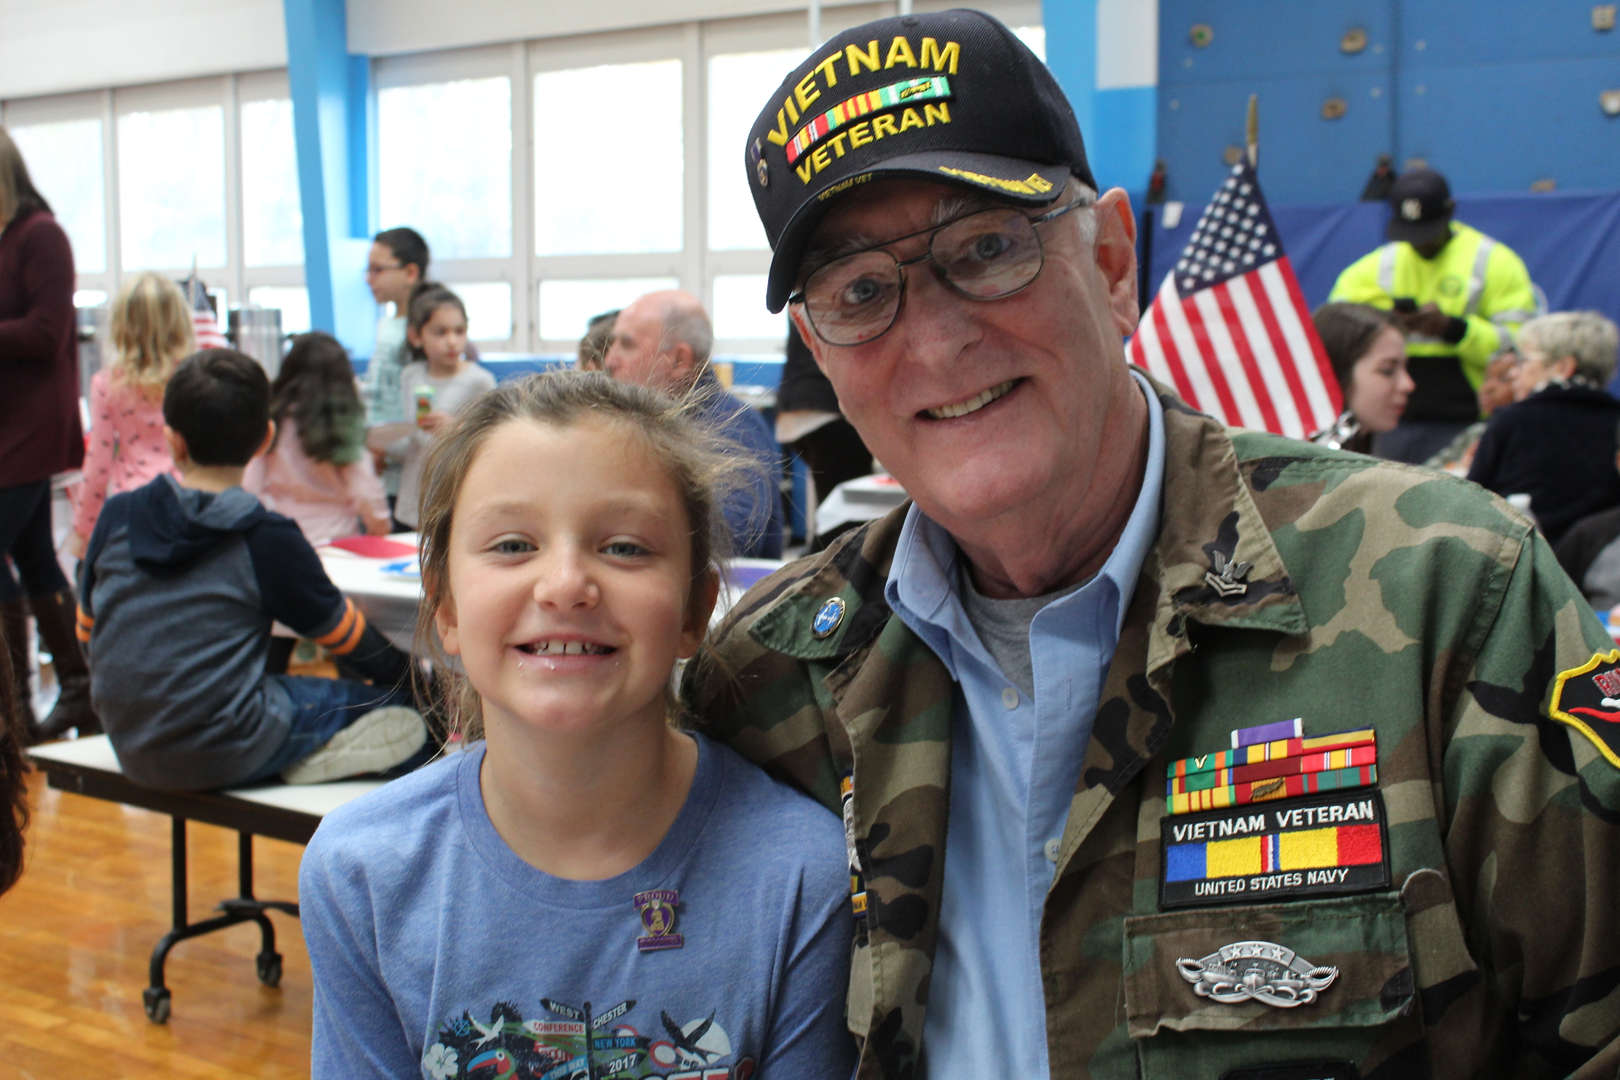 Veteran with hat sits with young girl